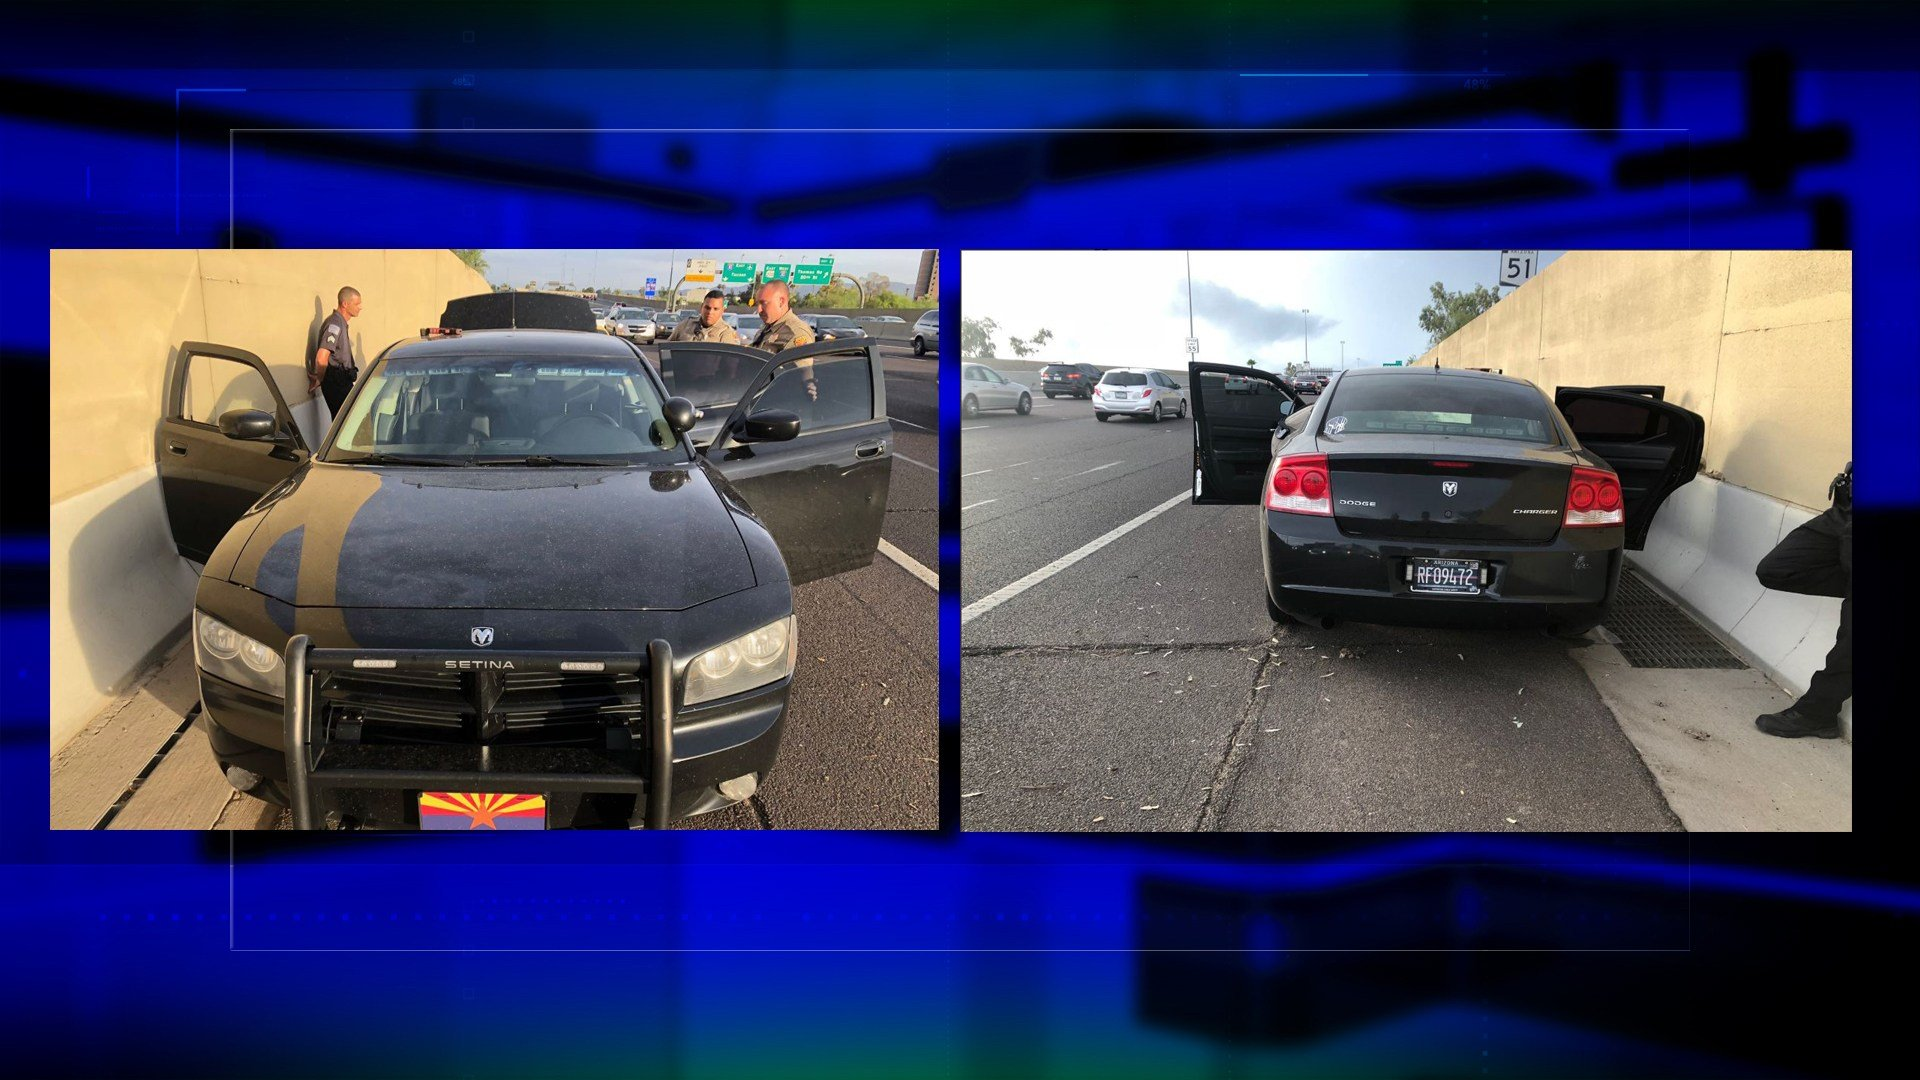 Arizona Police want people to contact them if they've been pulled over by this car